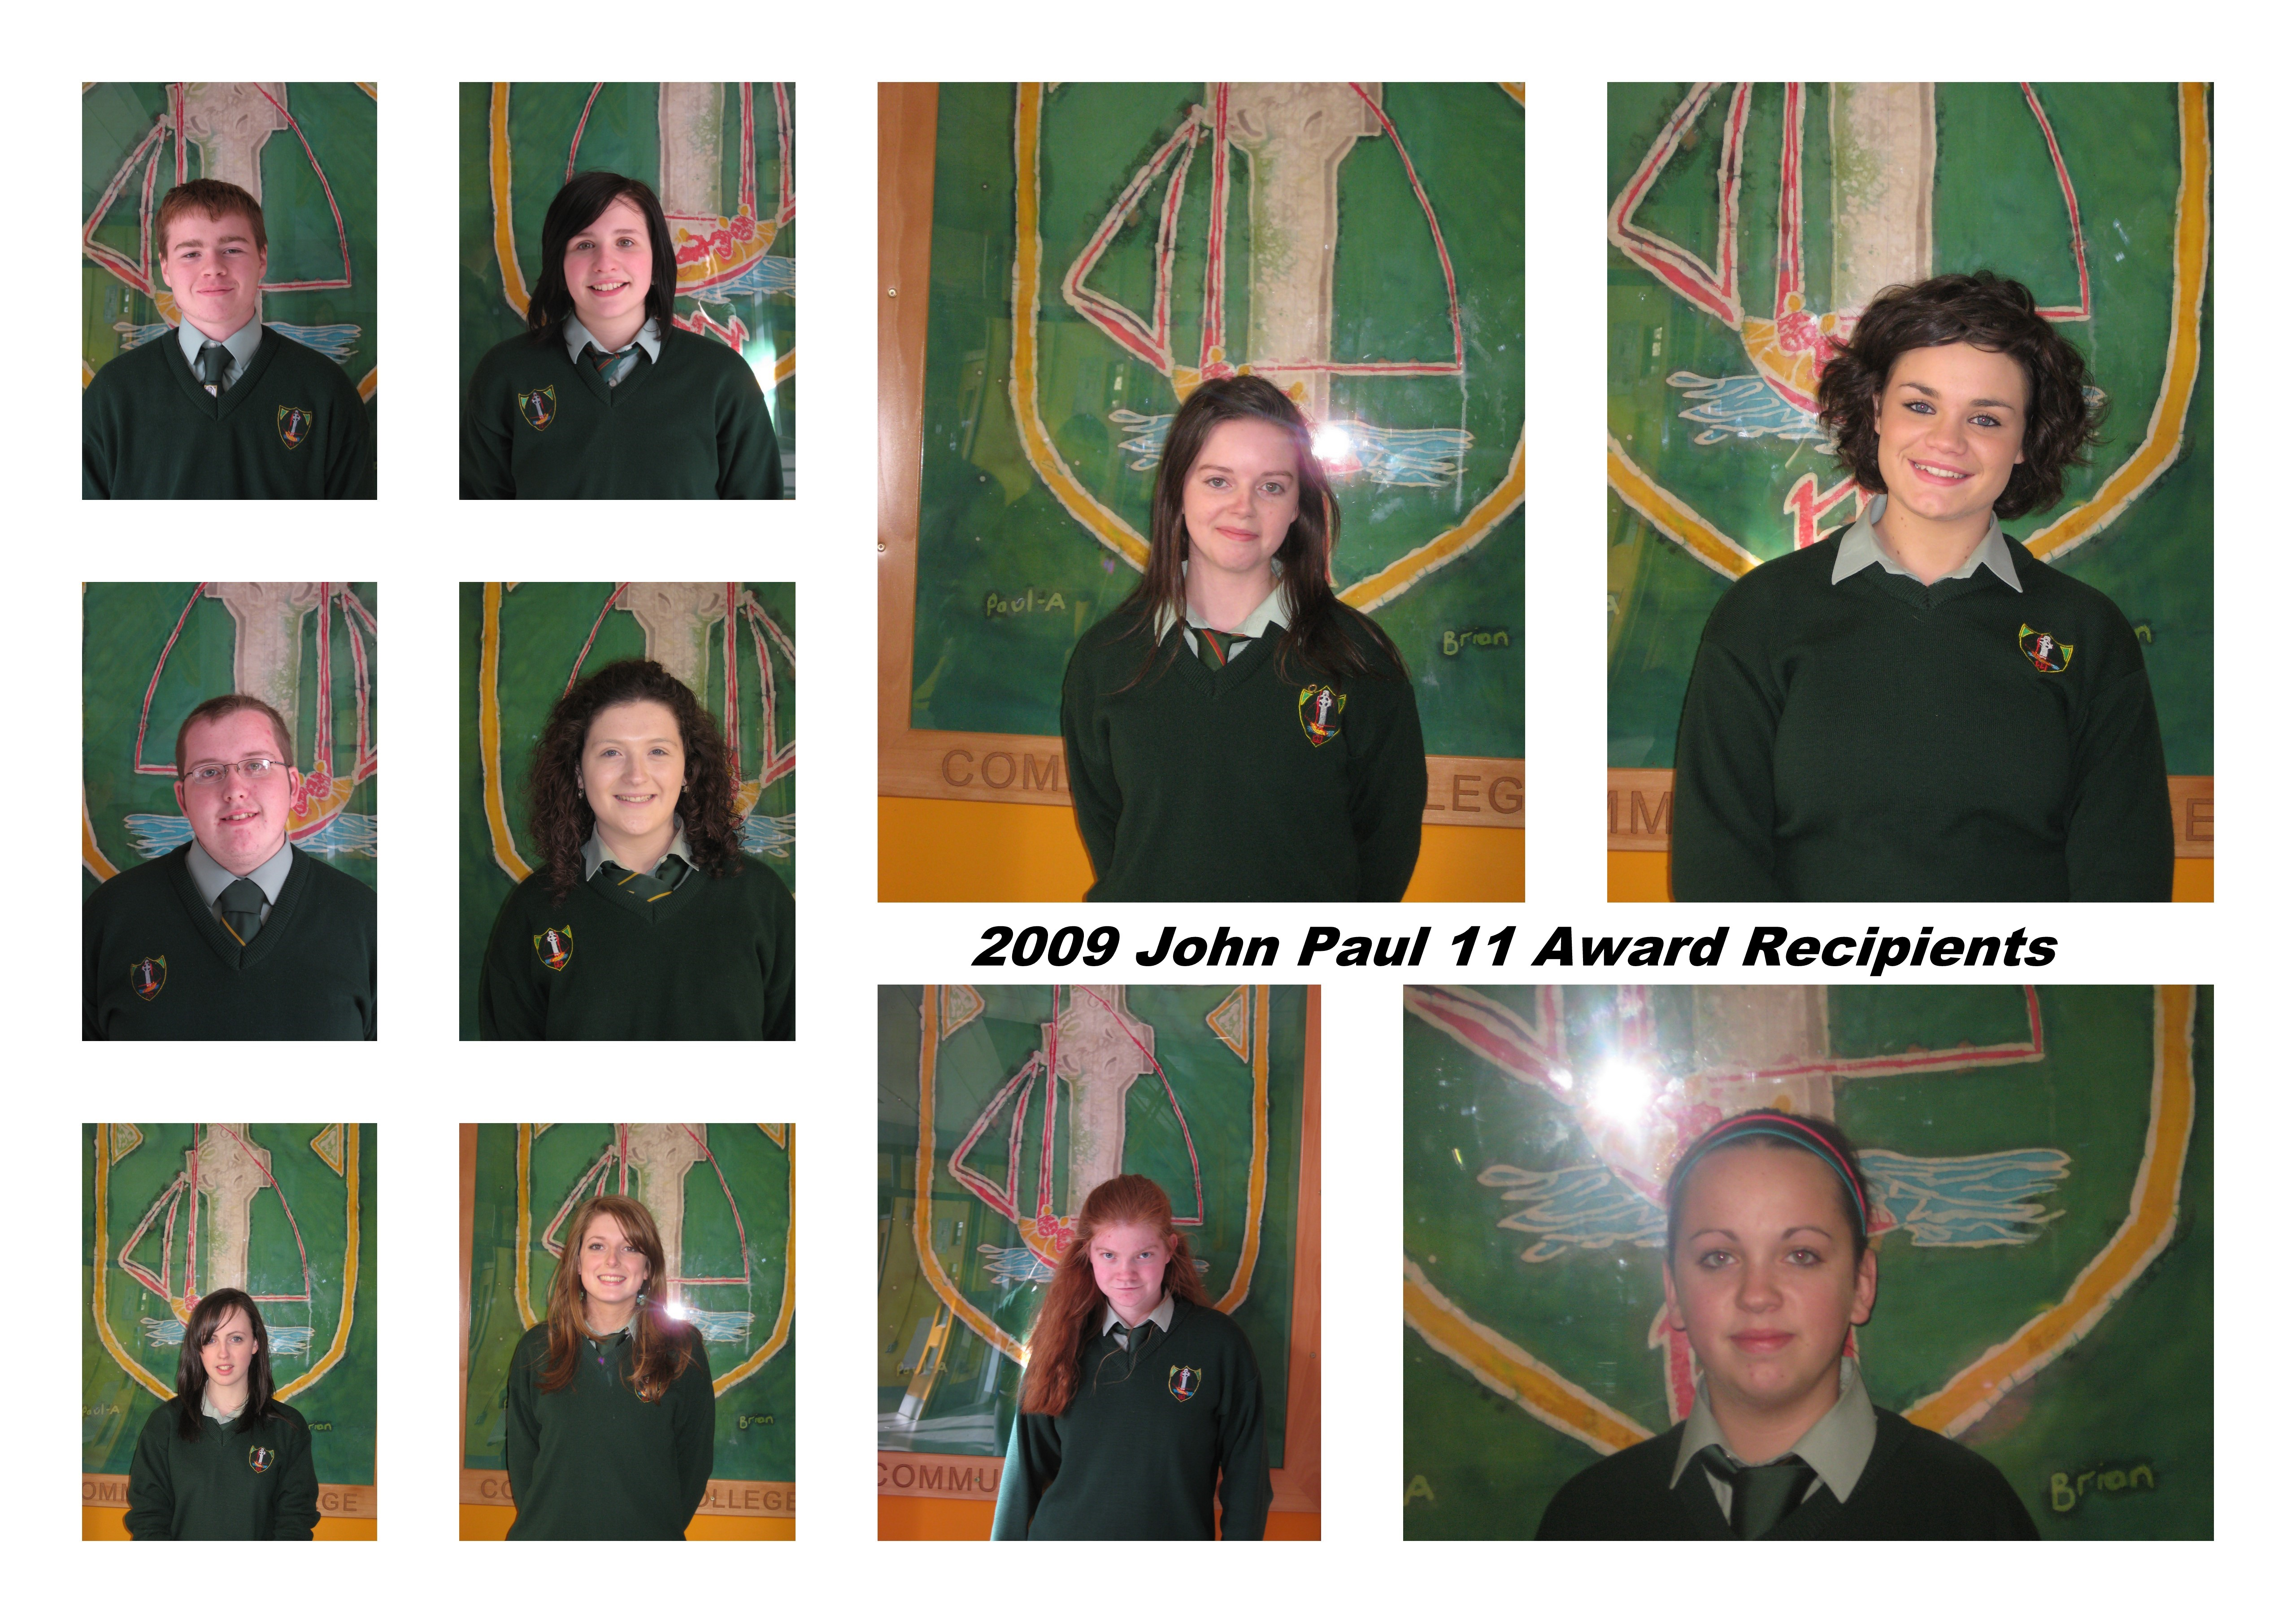 MCC Students for John Paul 11 Awards